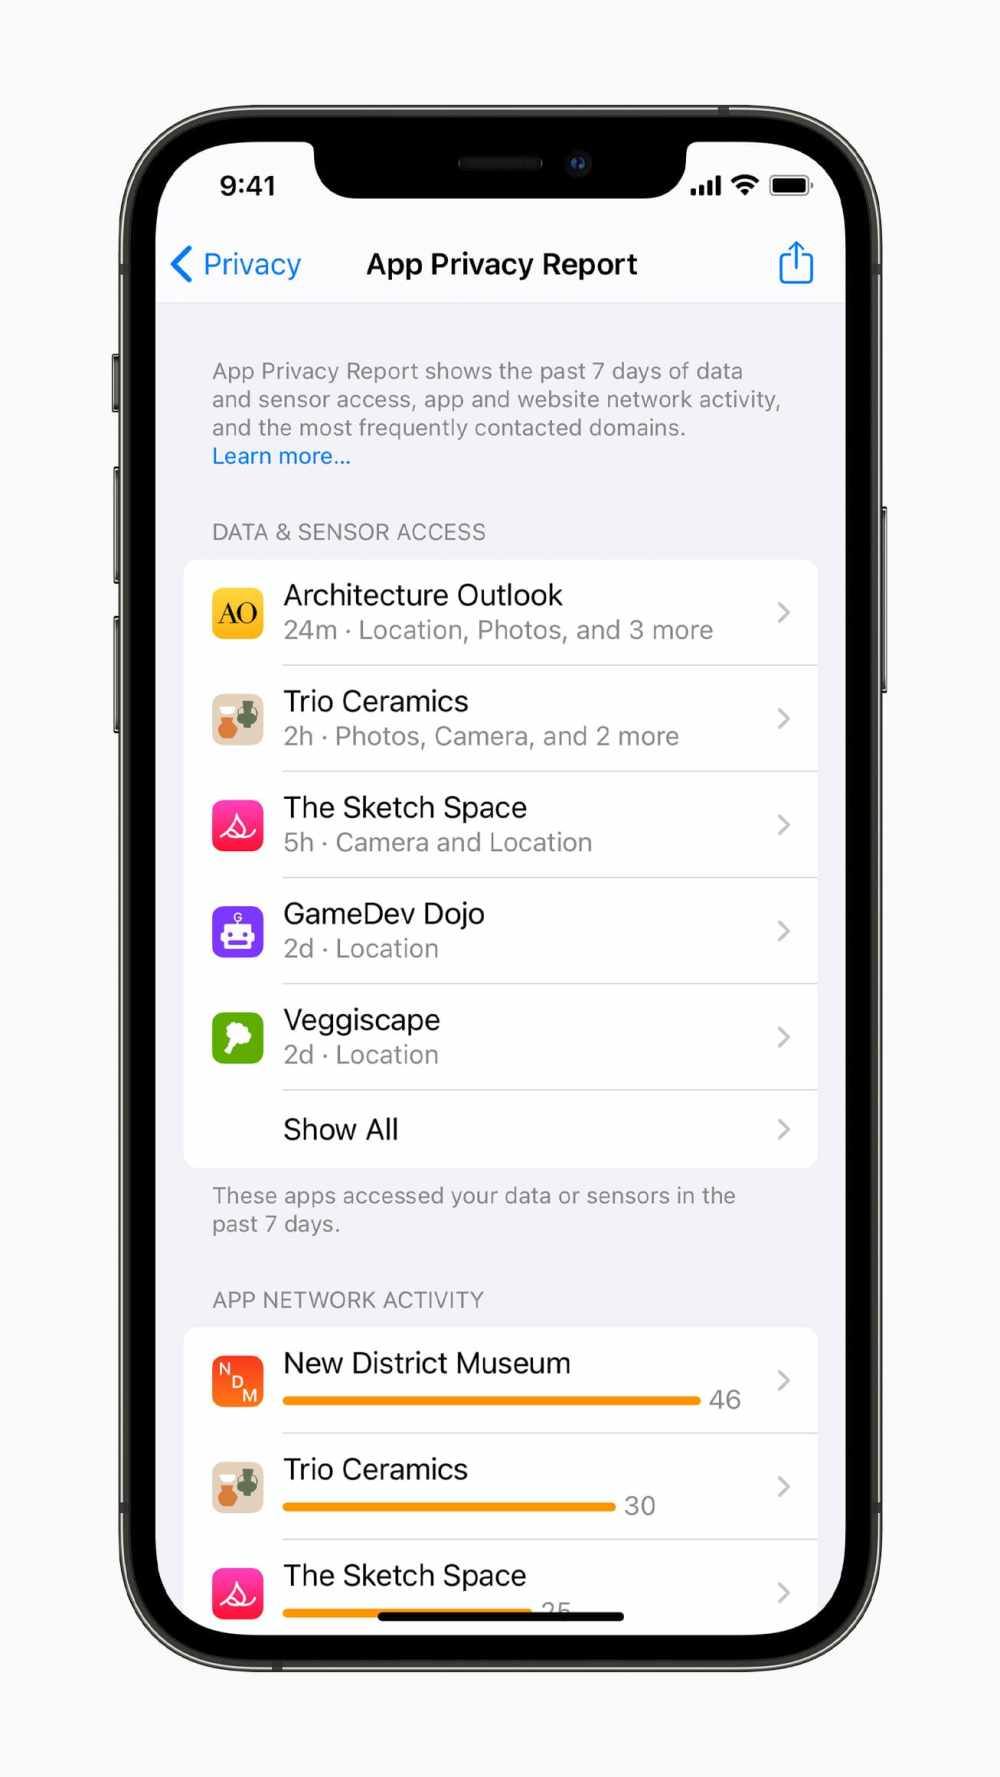 Apple_iPhone12Pro-iOS15-settings-privacy-app-privacy-report_060721